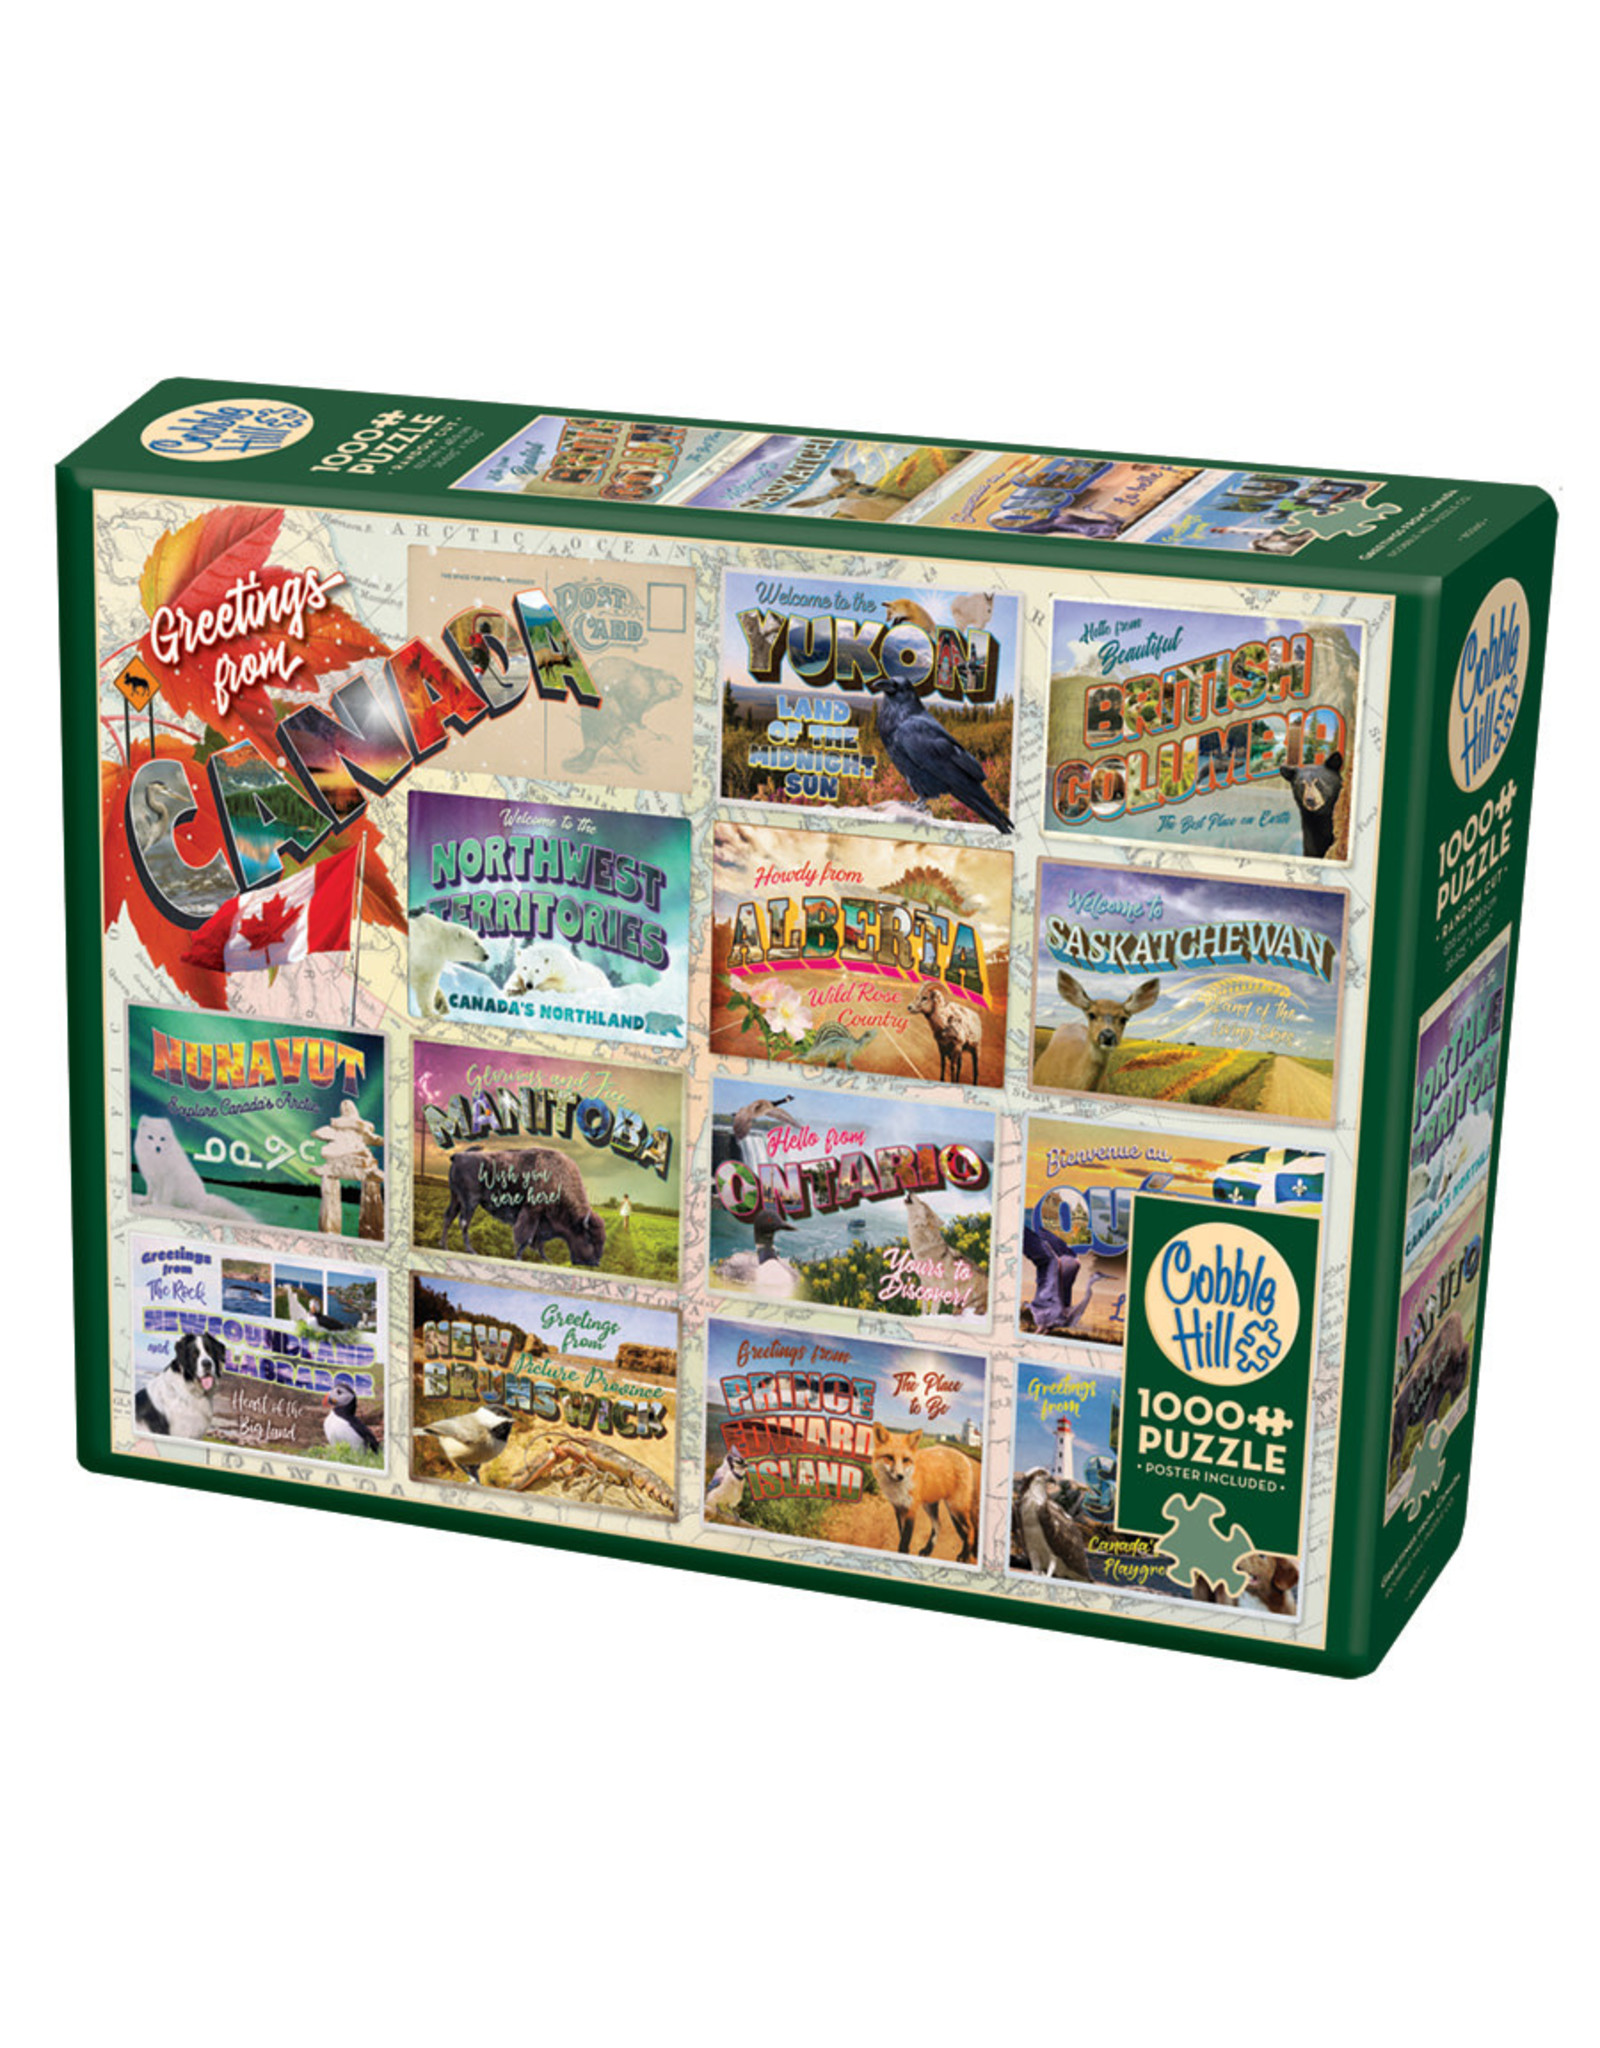 Cobble Hill Greetings from Canada 1000 pc